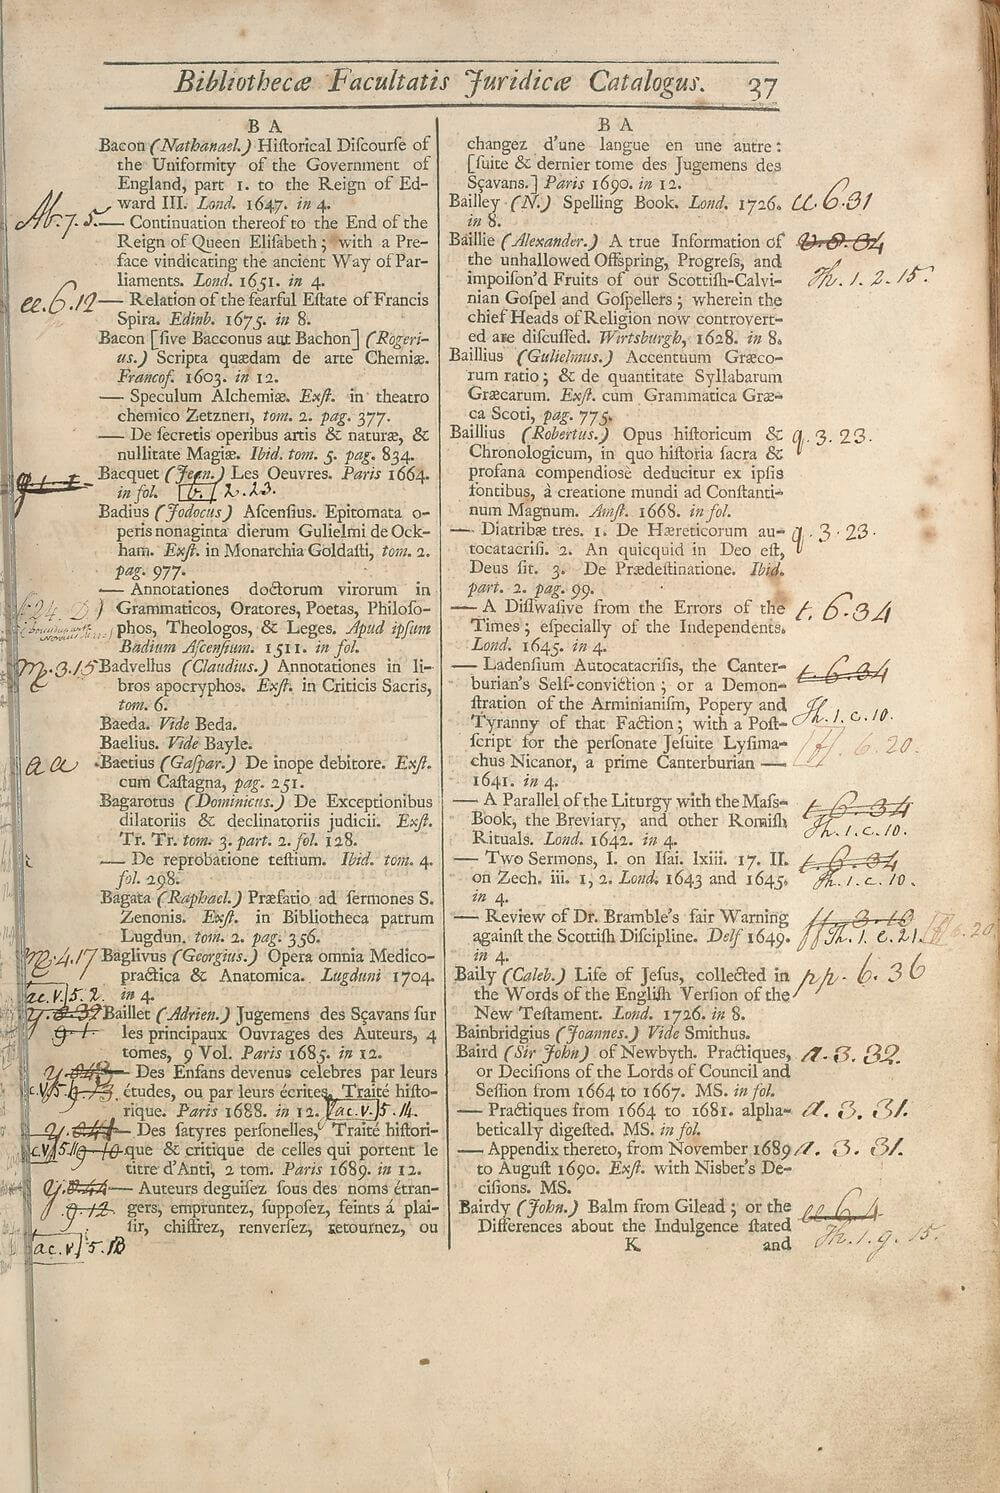 This was a working catalog for the Advocates' library, and the shelfmarks for the books were added and updated throughout its active life.